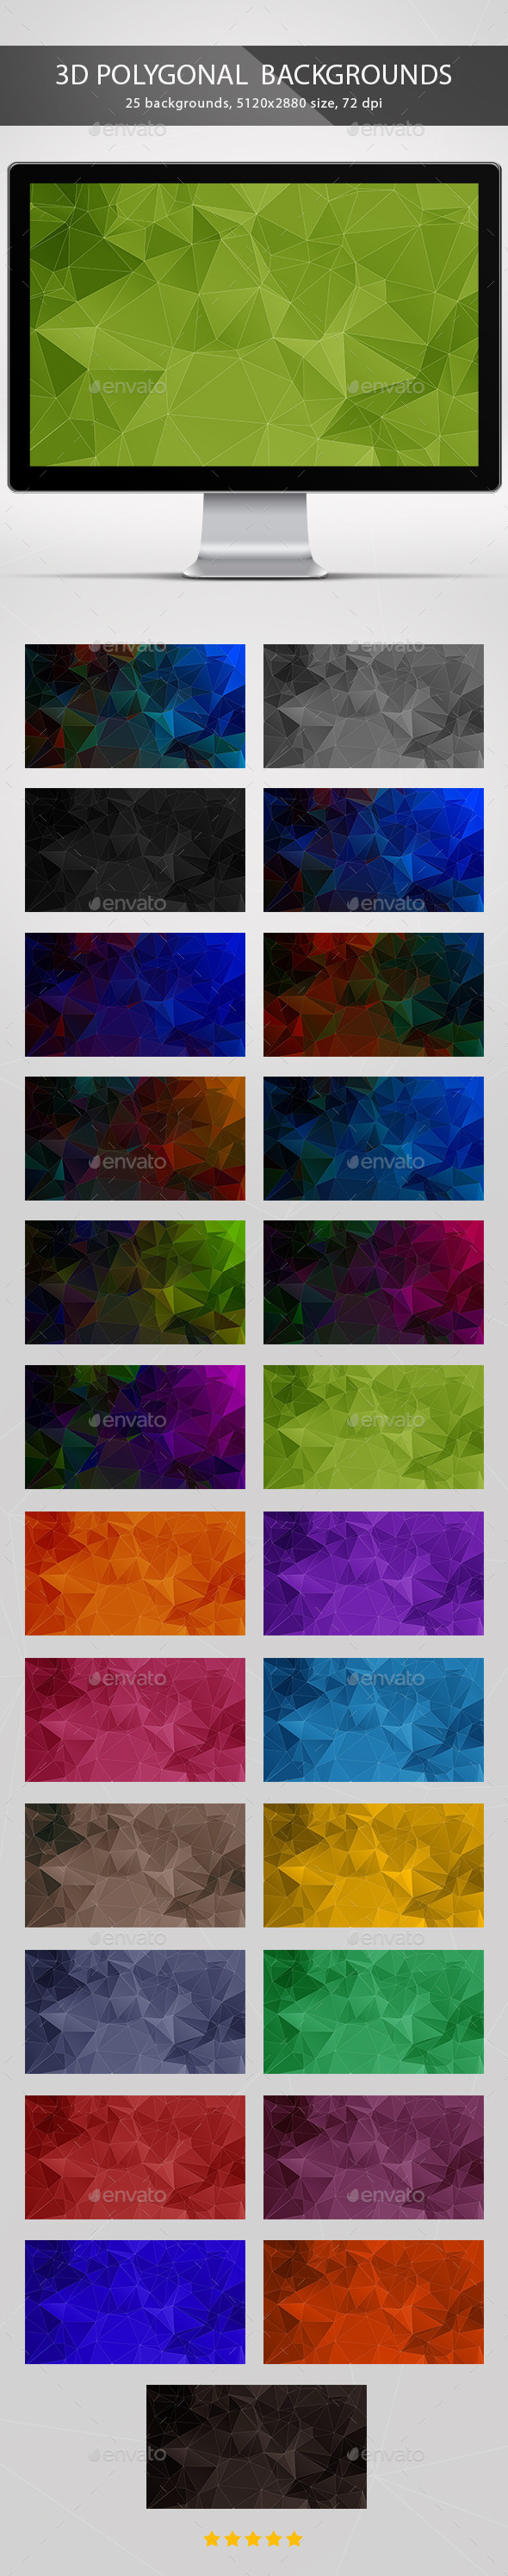 3D Polygonal Backgrounds - Abstract Backgrounds